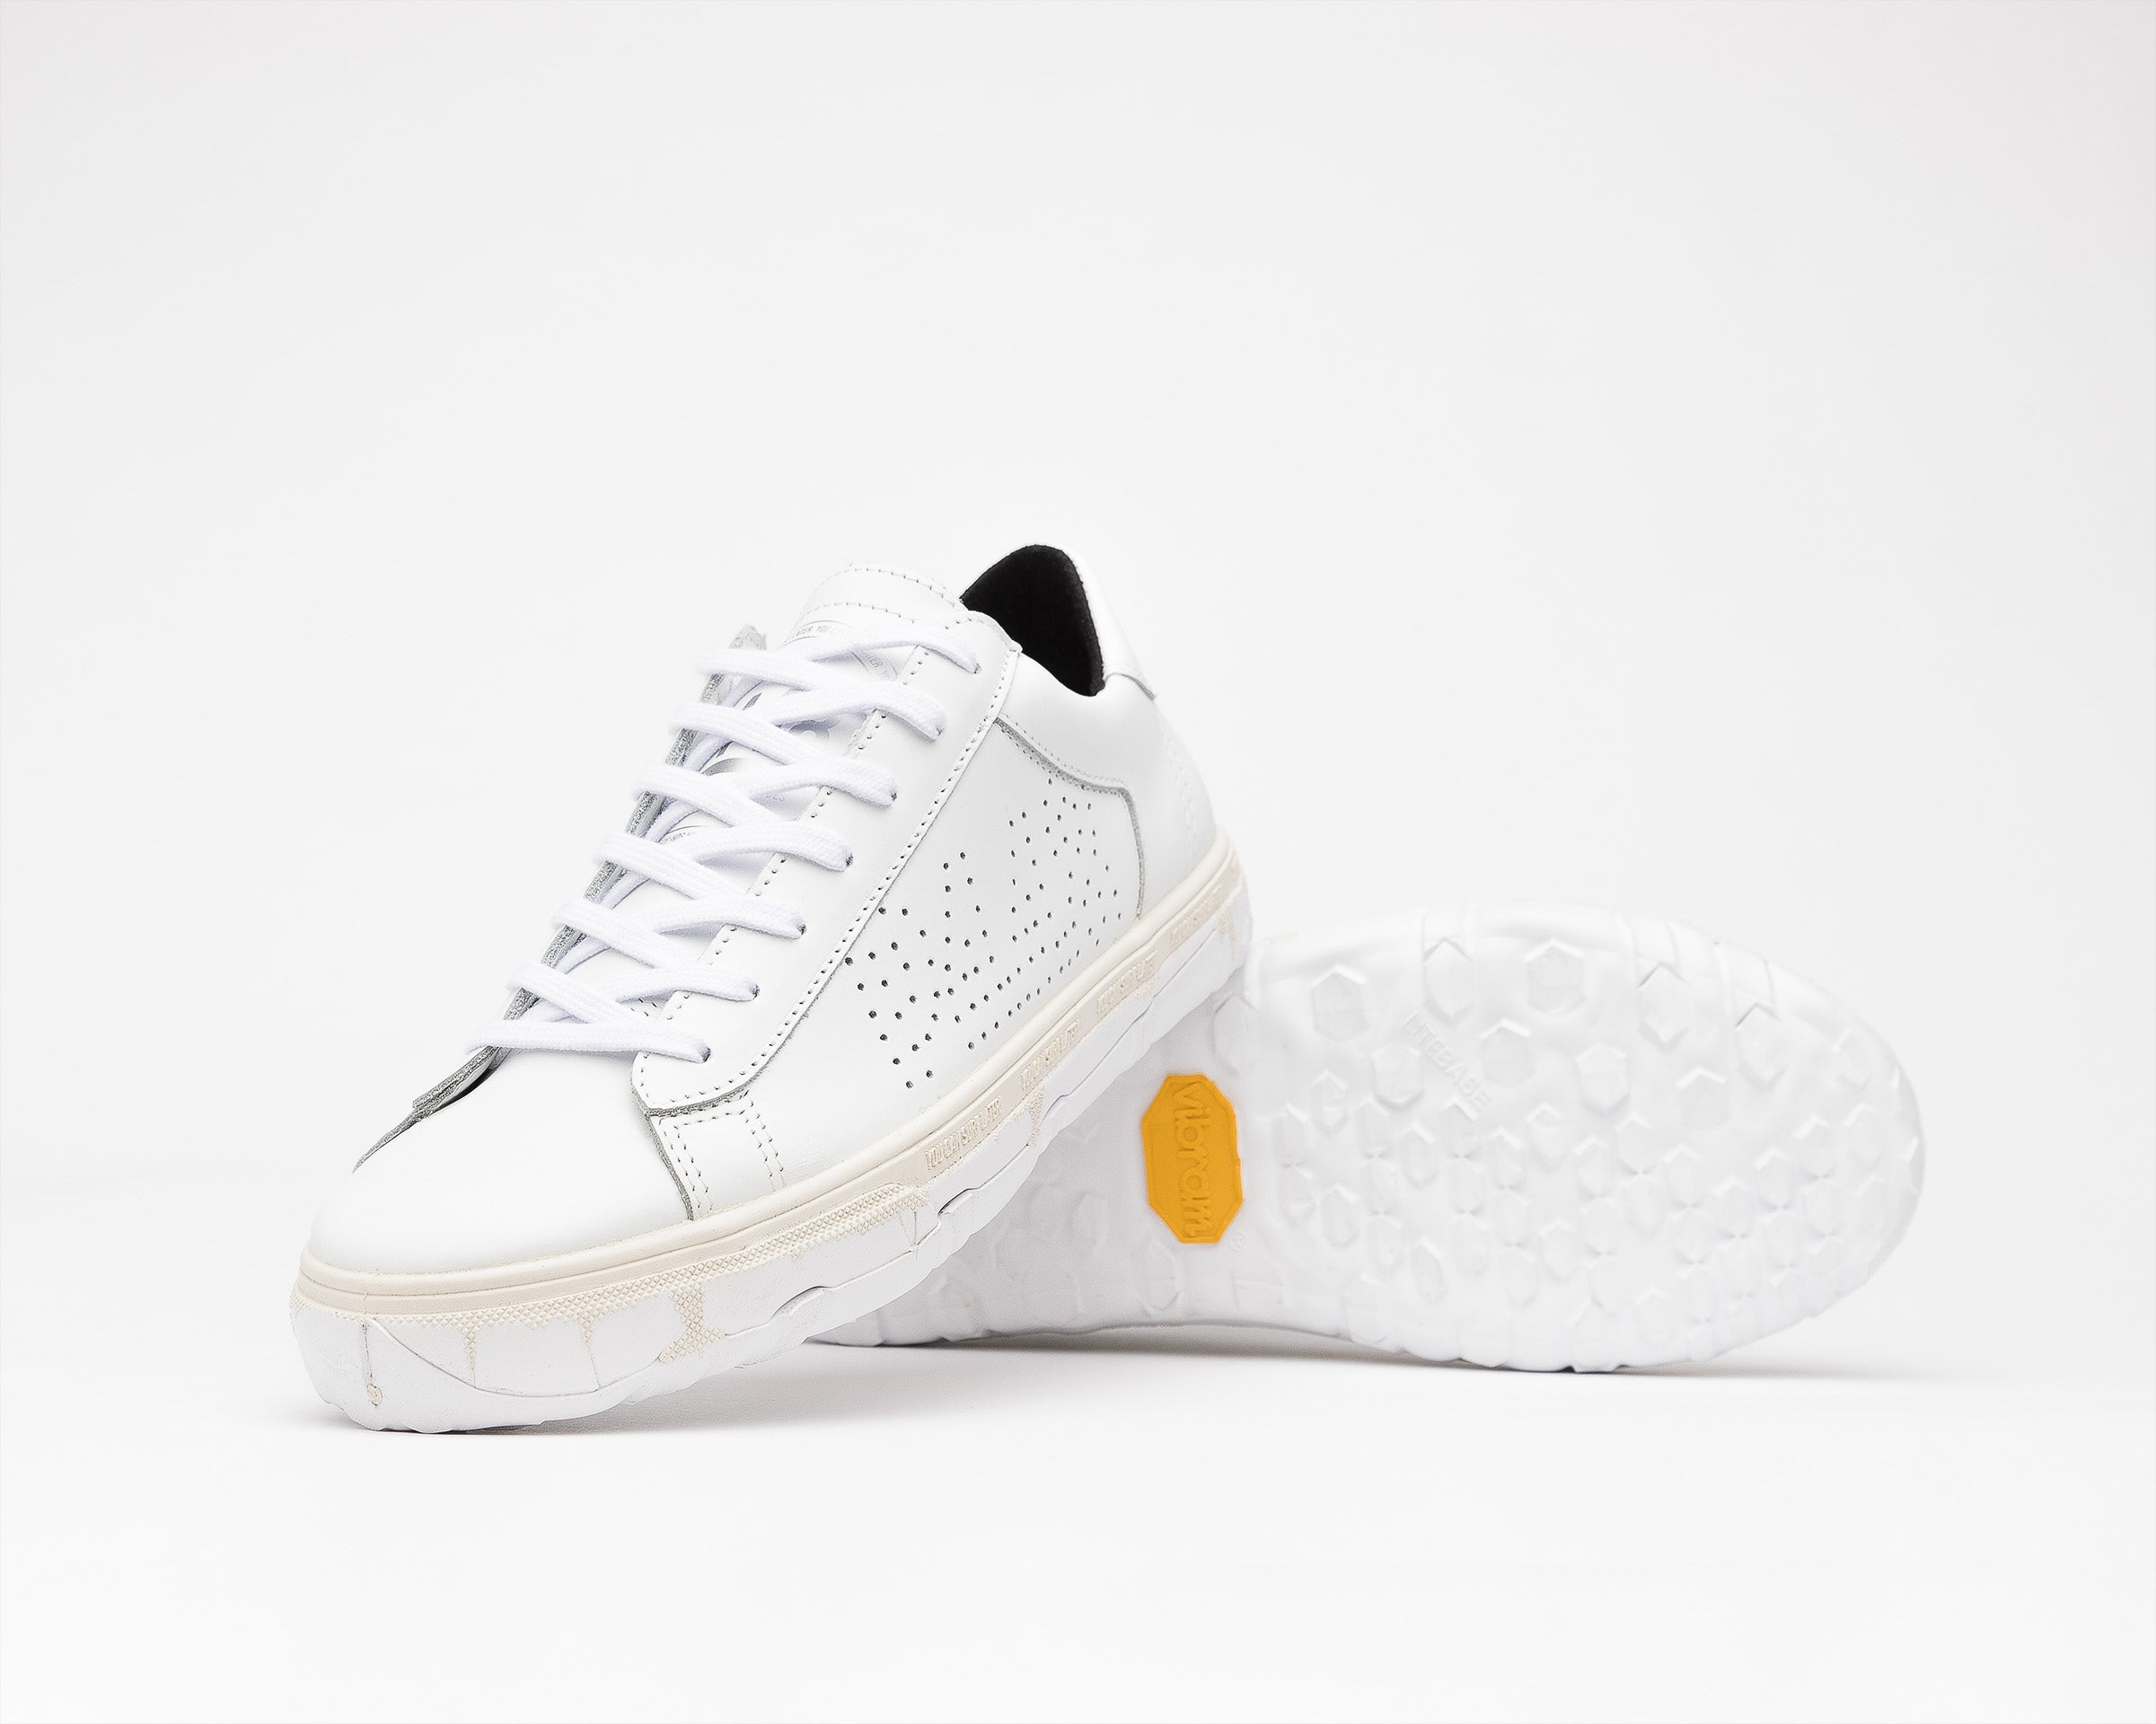 Y.C.S.L. Vibram Low-Top Sneaker in White/White - Detail 2